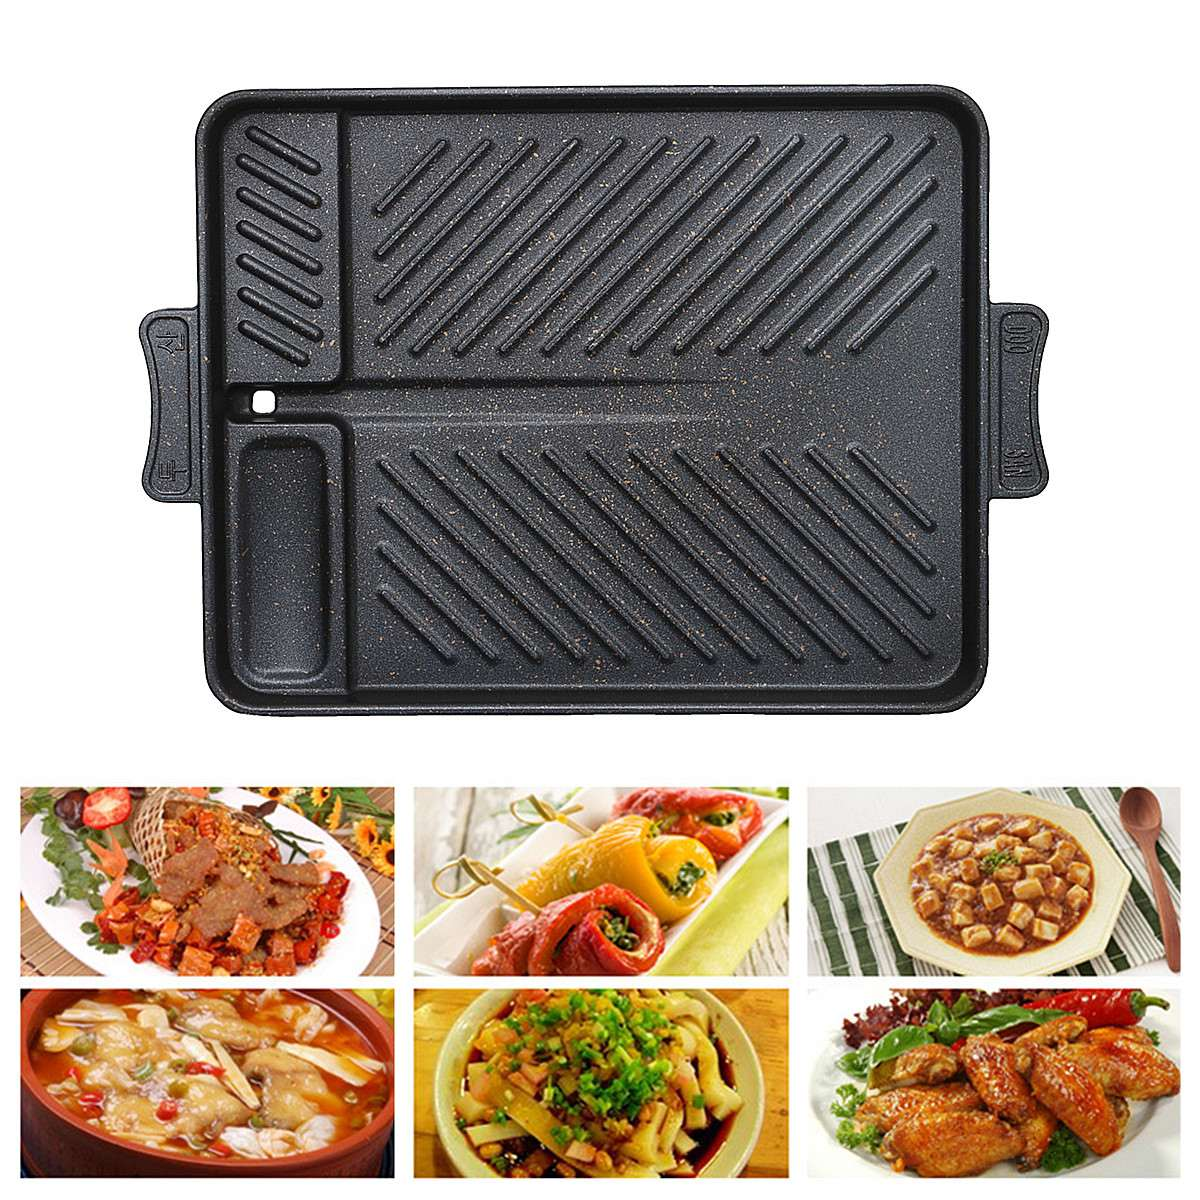 Home Baking Pan Barbecue Non Stick Table Top Roasting Tray Fried Dish Roaster Grill Twill Pattern Design Heat Evenly For In/outdoor